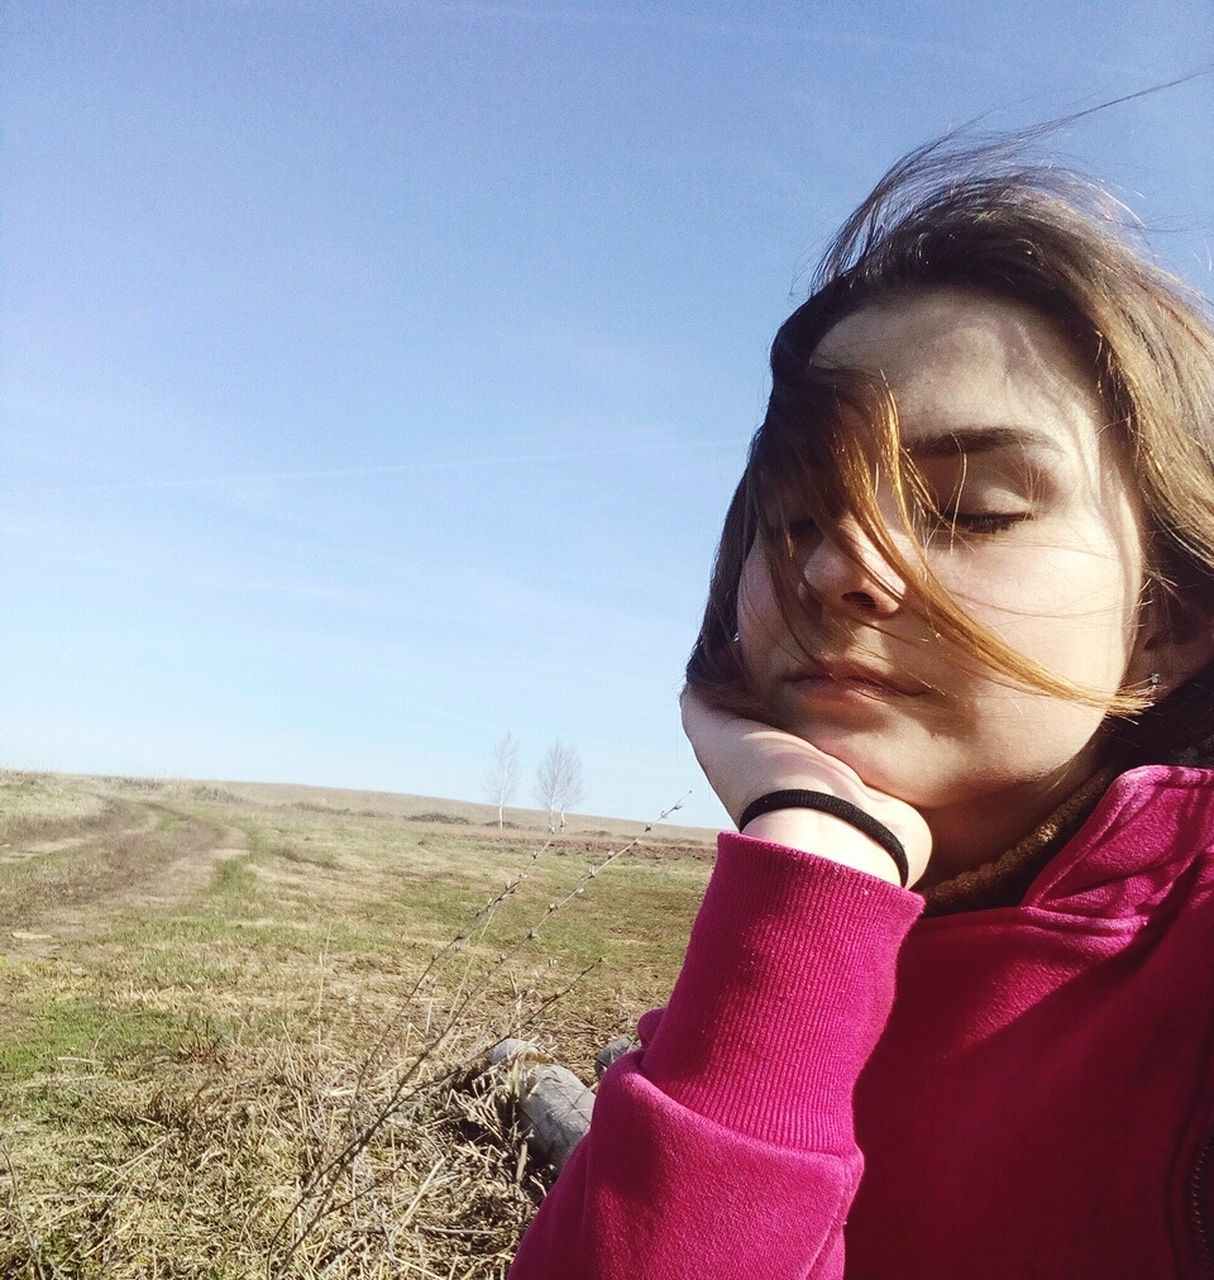 real people, one person, landscape, childhood, girls, lifestyles, day, sky, field, clear sky, outdoors, leisure activity, nature, elementary age, grass, close-up, people